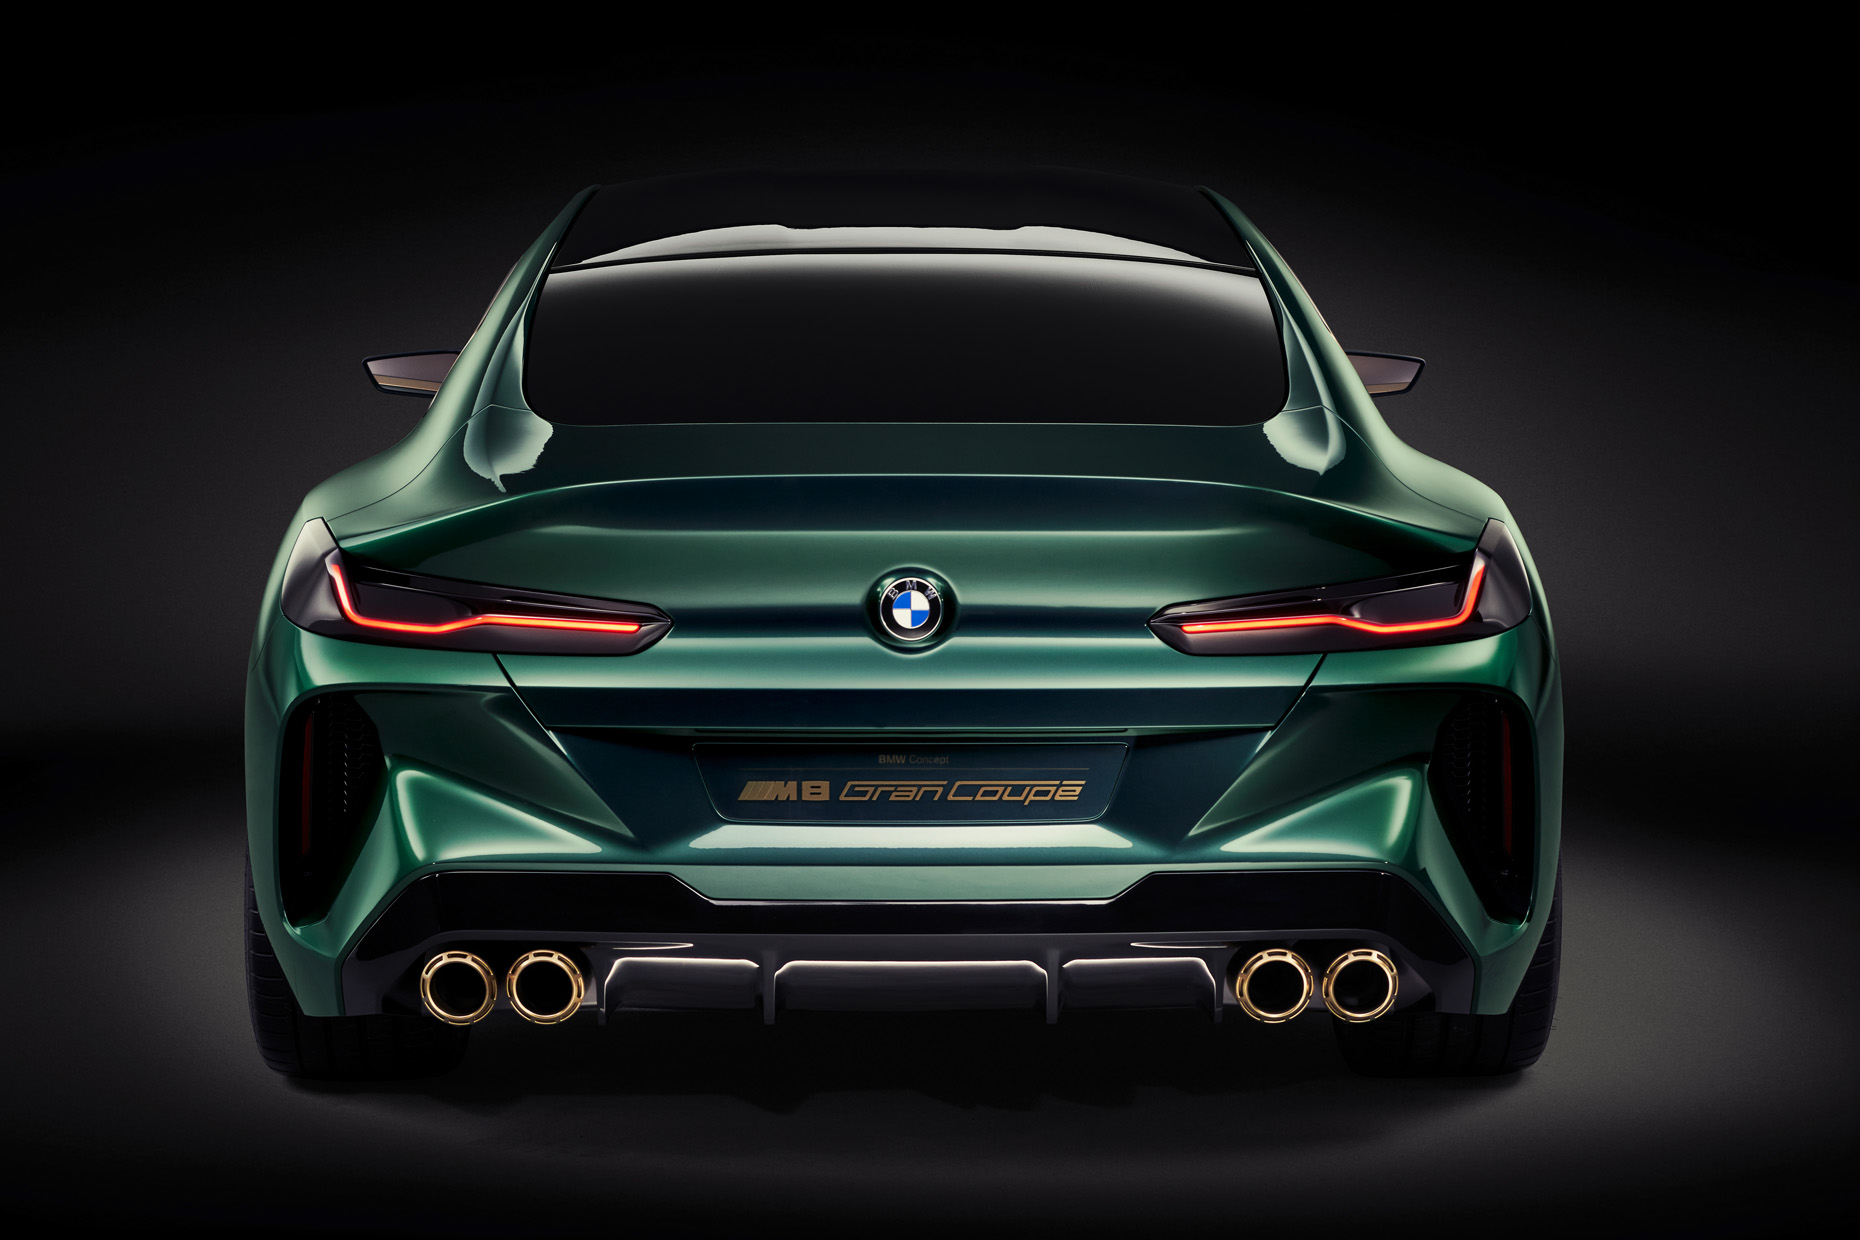 09_07_10_BMW_Concept_M8_Gran_Coupe_Heck_02